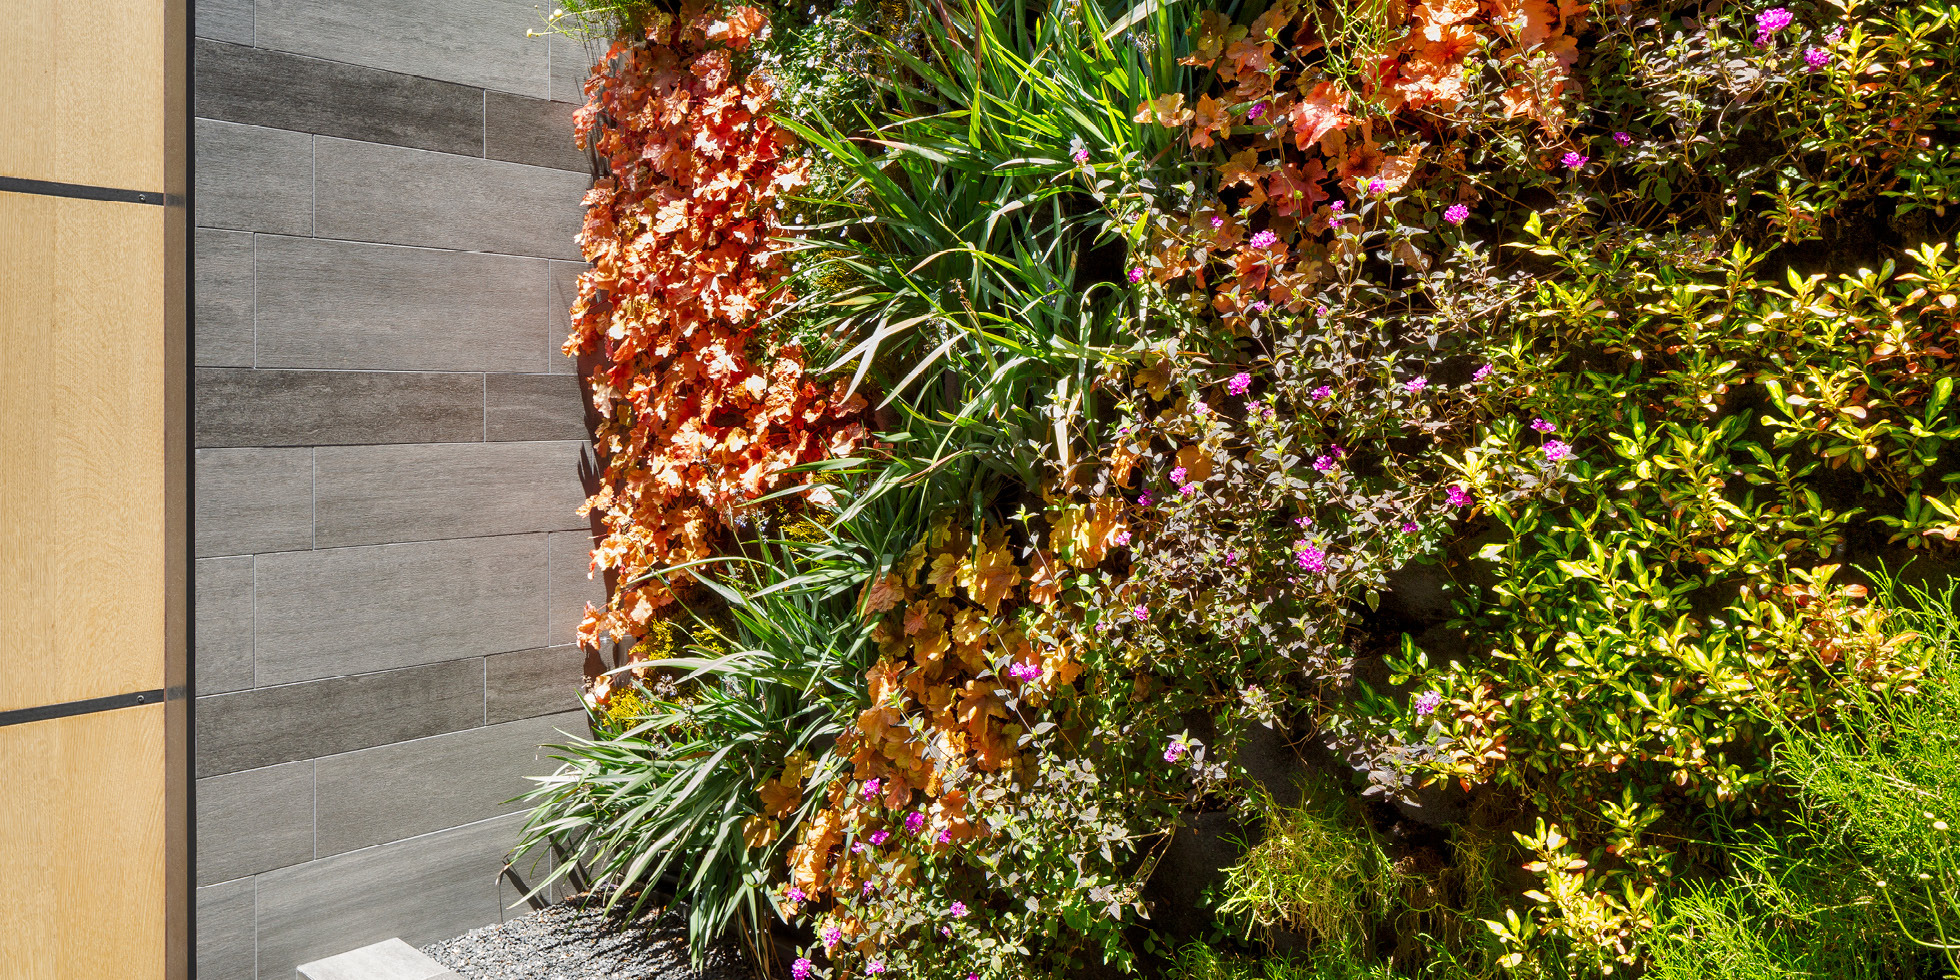 San Francisco Residence Living Wall by Habitat Horticulture - View 3